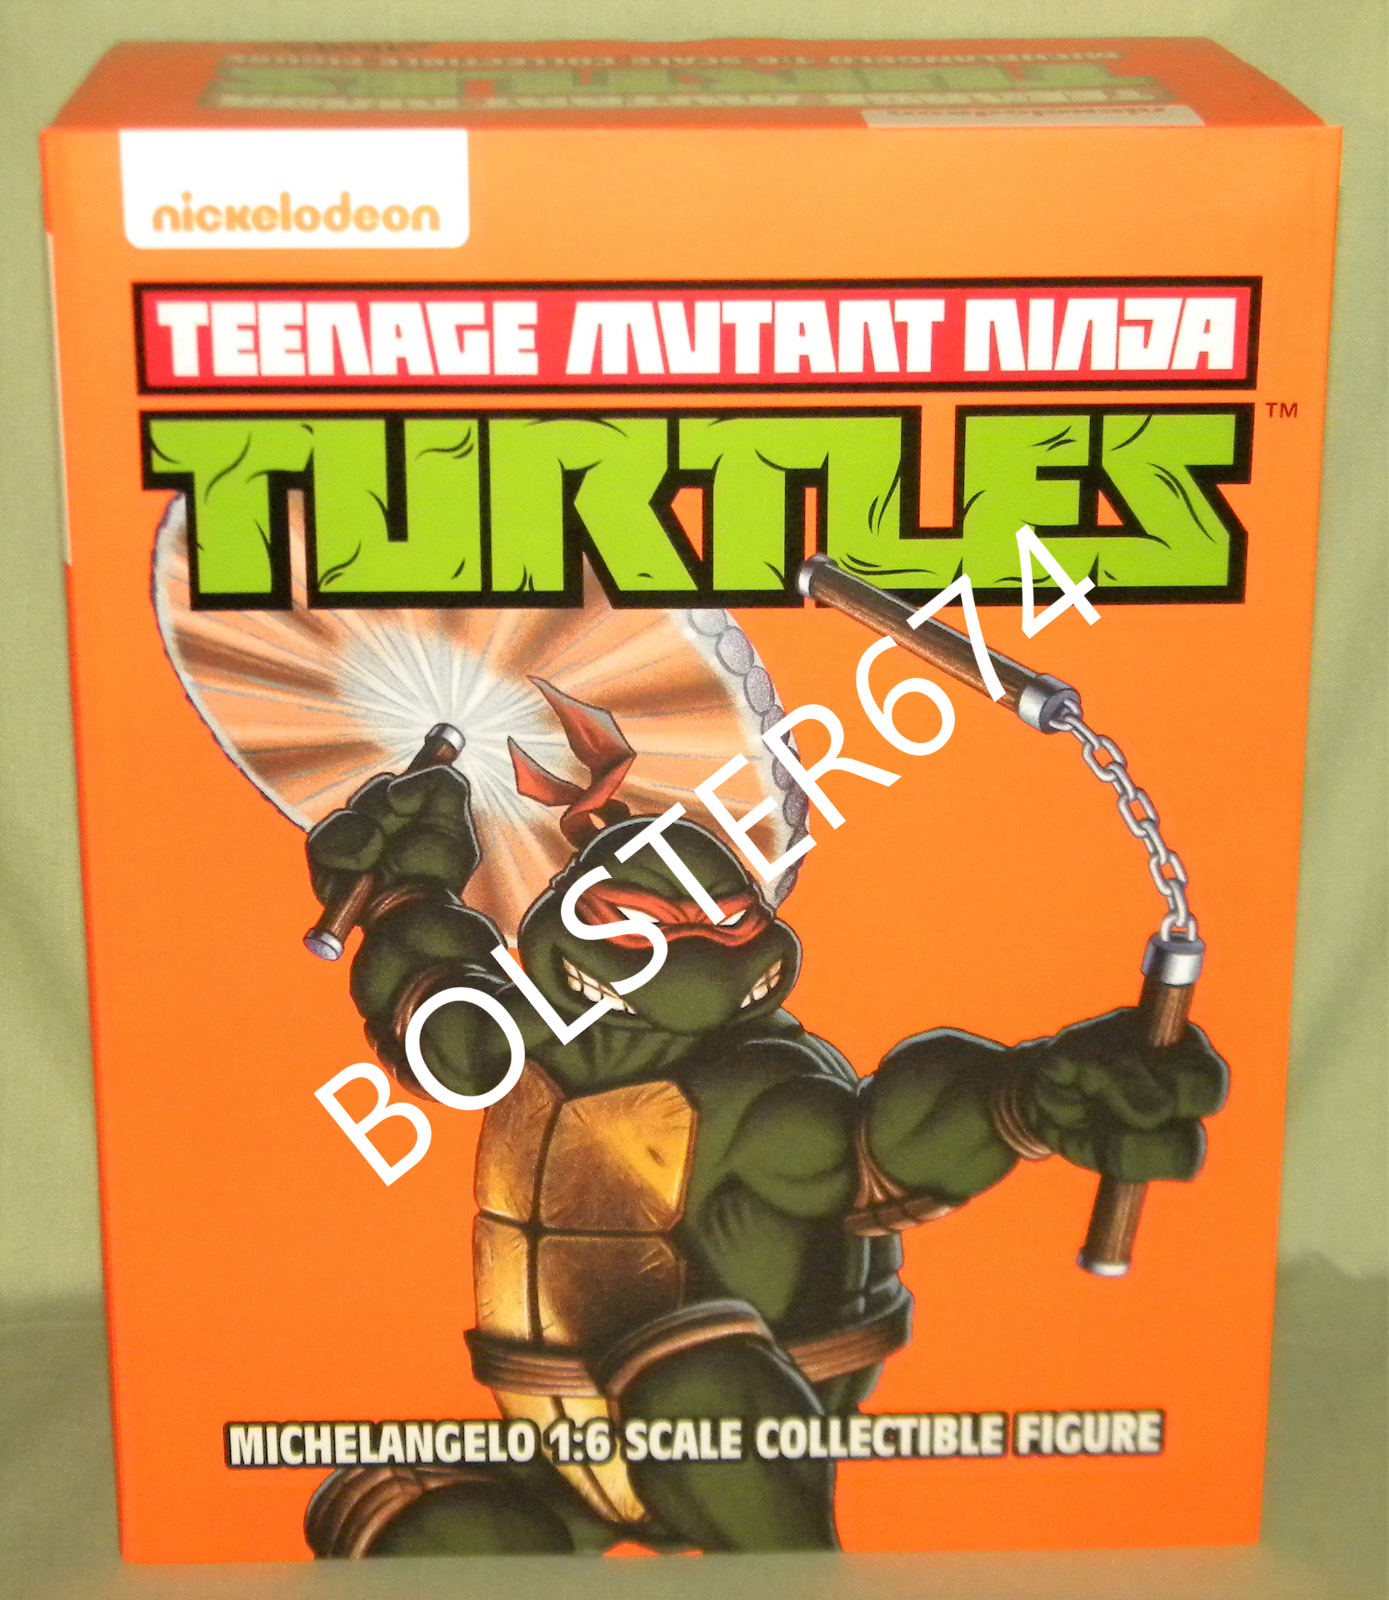 MICHELANGELO 1 6 Scale Collectible cifra Mondo Teenage Mutant Mutant Mutant Ninja Turtles 5f85ac